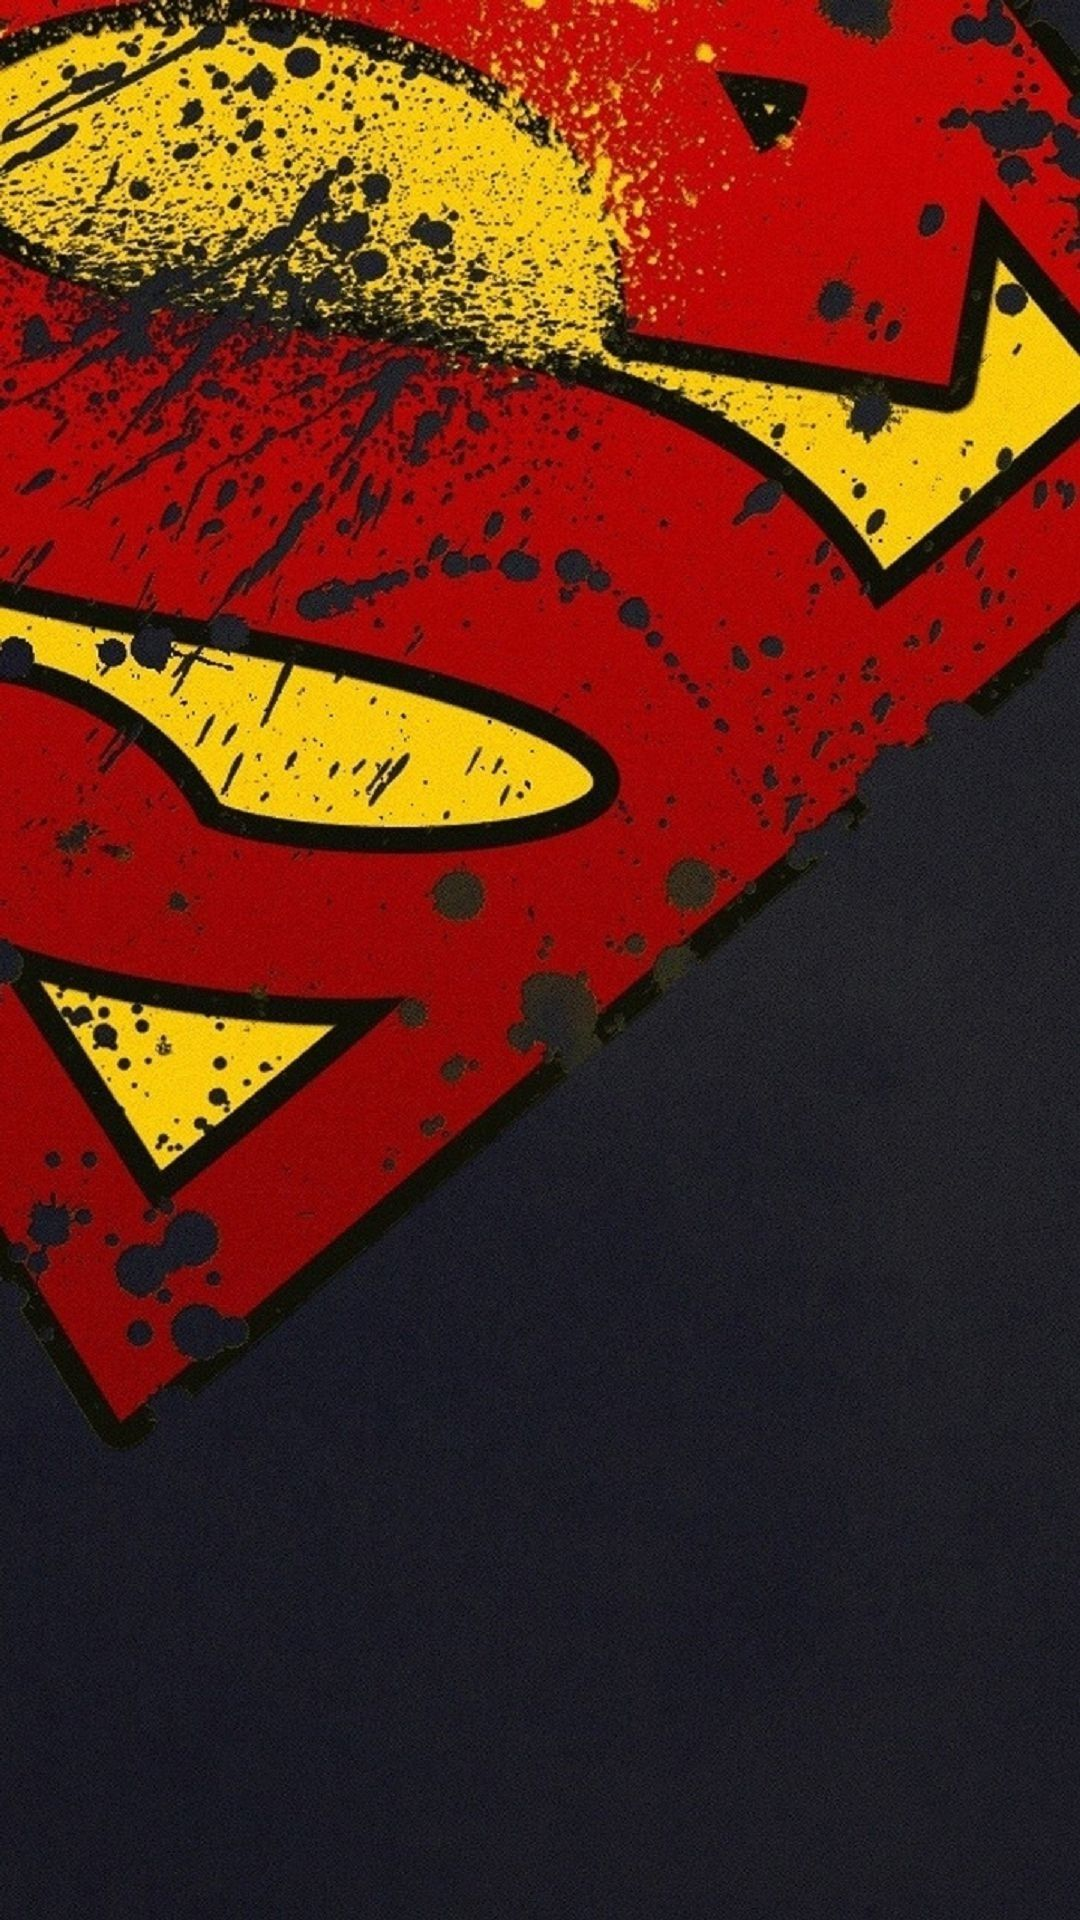 Hd wallpapers for iphone 6 - Movies Iphone 6 Plus Wallpapers Superman Logo Minimal Iphone 6 Plus Hd Wallpaper Movies